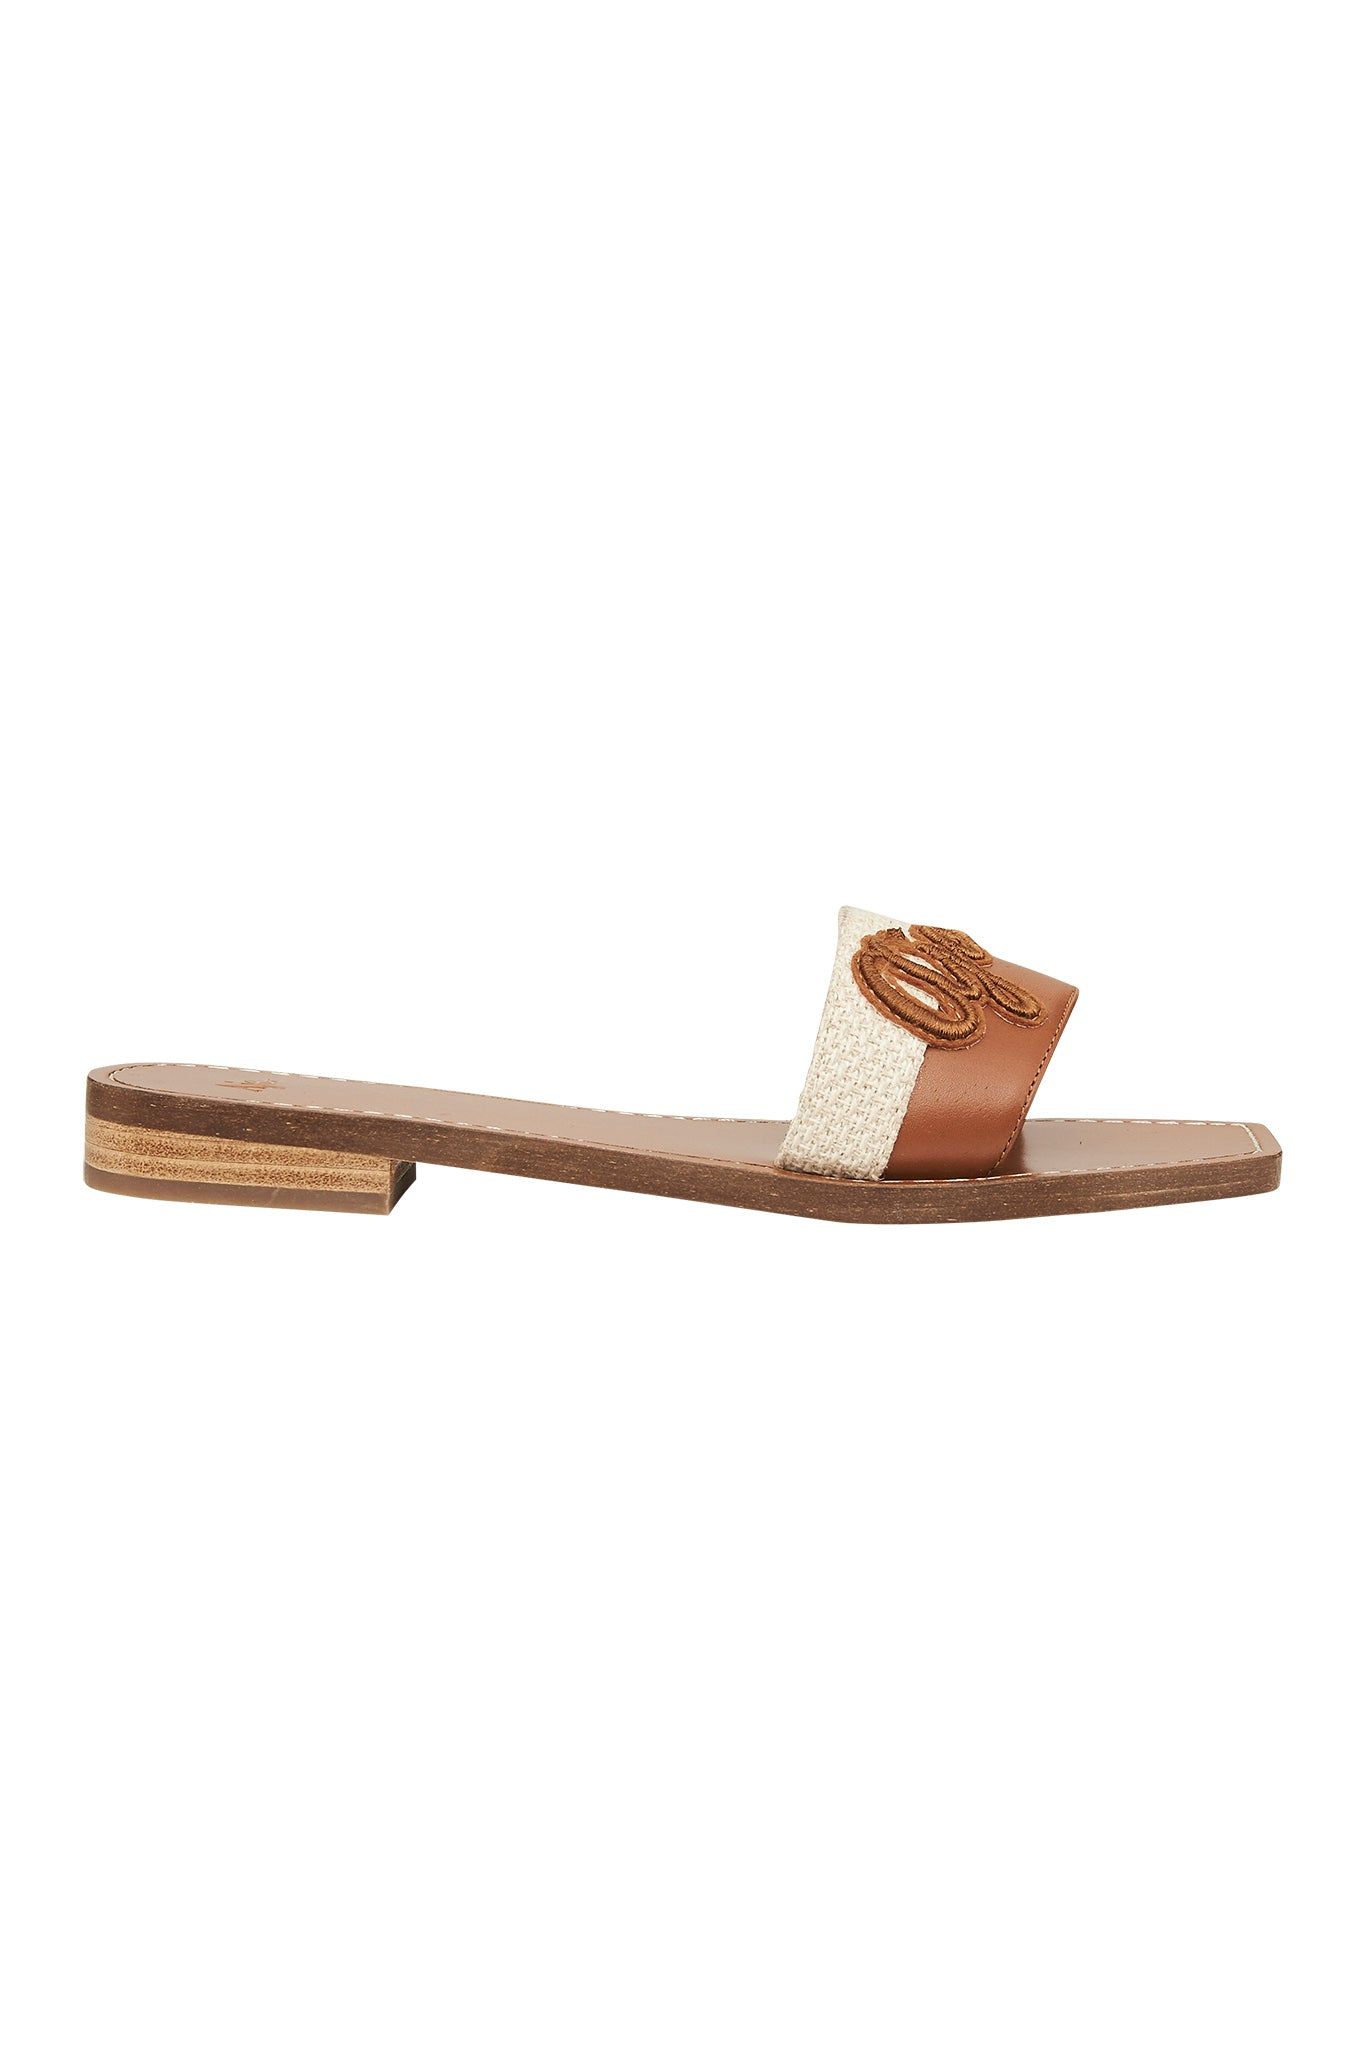 Rigby Slide Sandal Product View